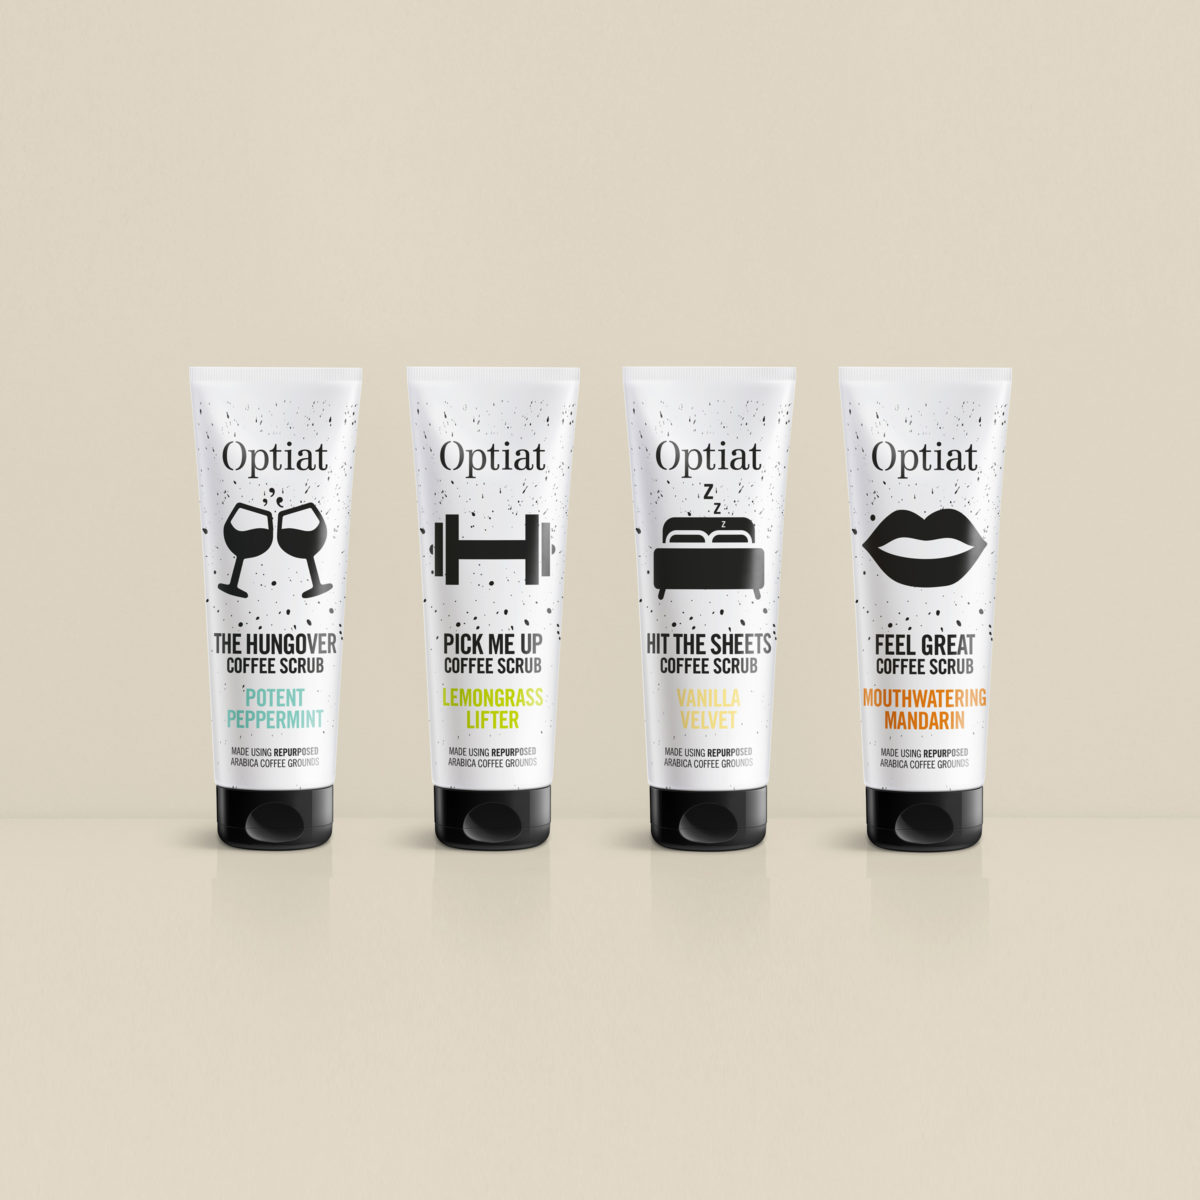 favourite04_Optiat_Packaging_studiomore